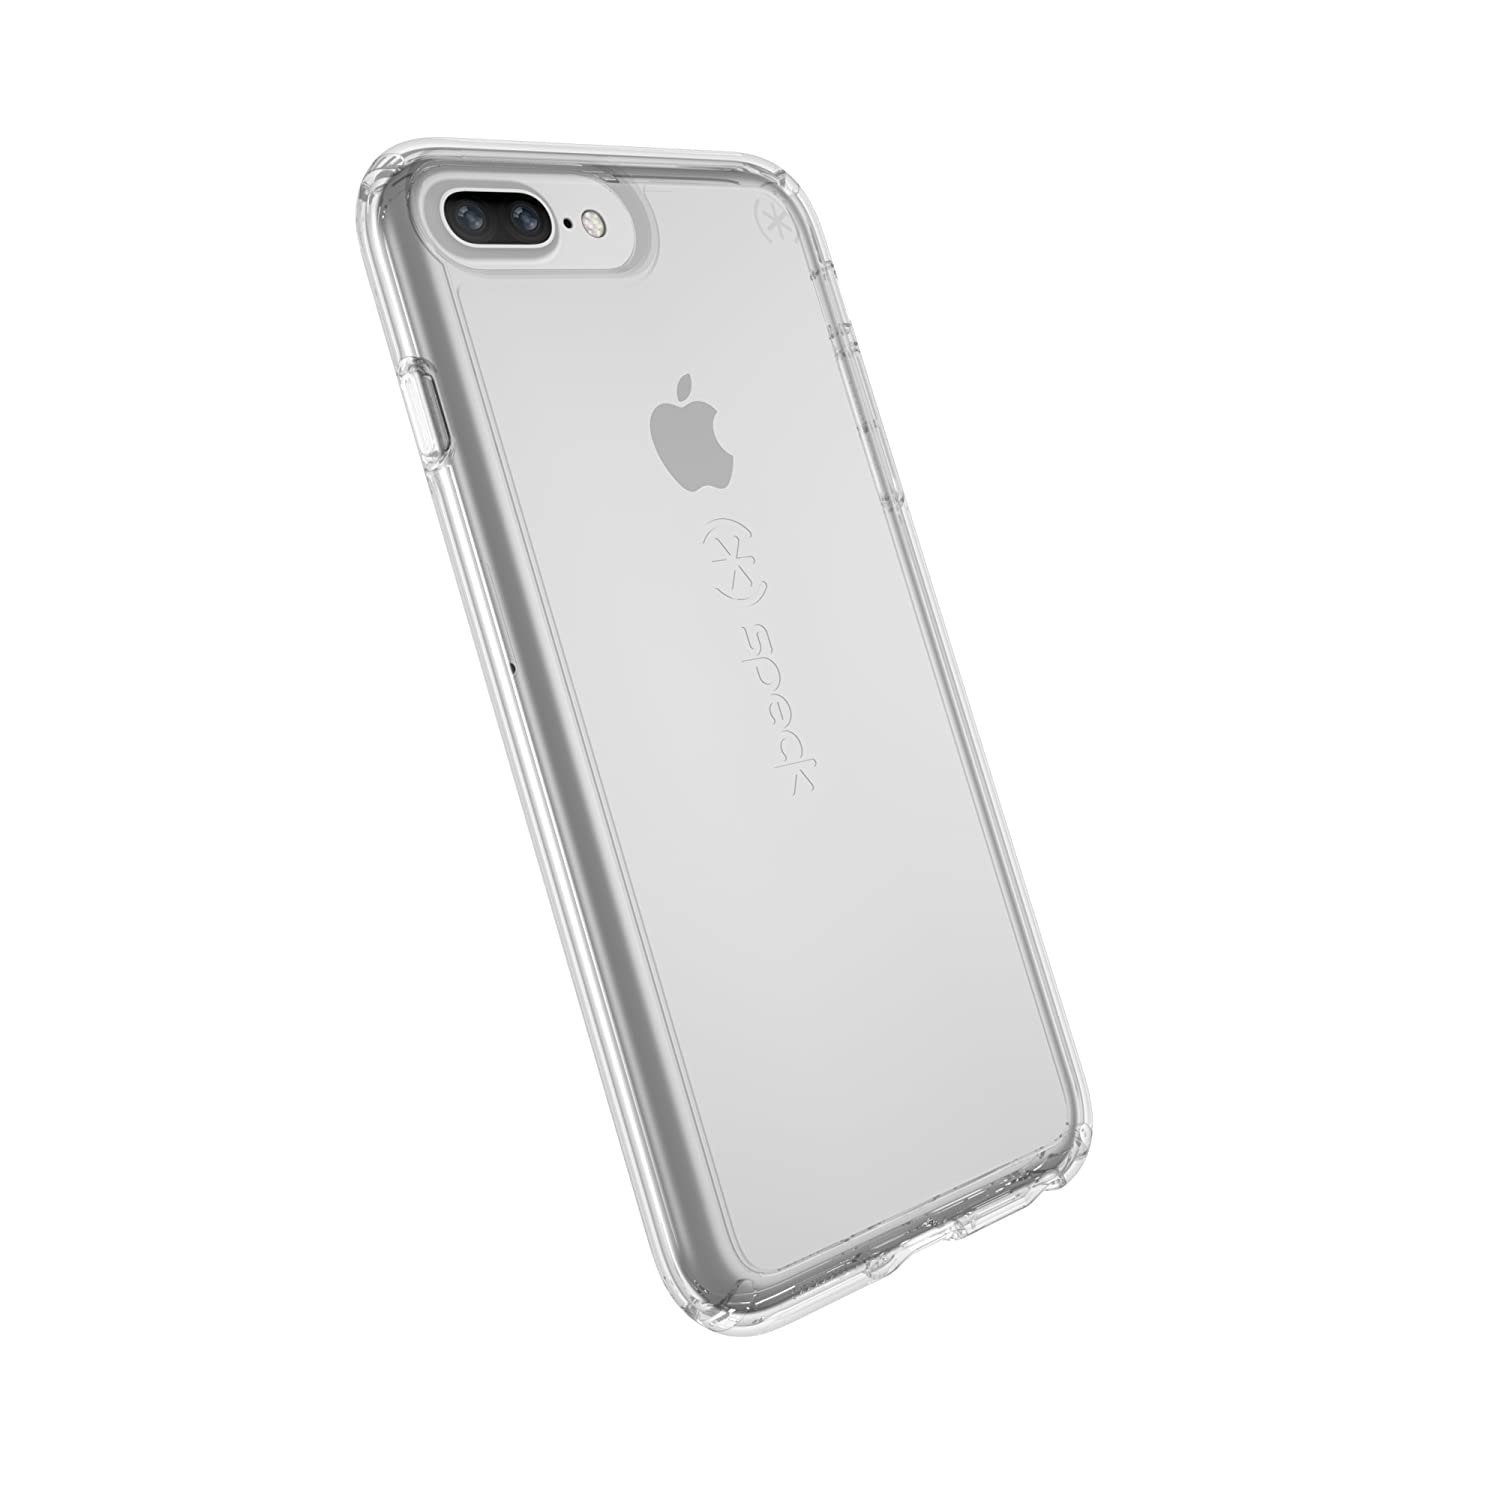 huge discount 9dd7a 43d73 Speck Products Gemshell Cell Phone Case for iPhone 8 Plus (Also fits 7 Plus  and 6S/6 Plus) - Clear/Clear